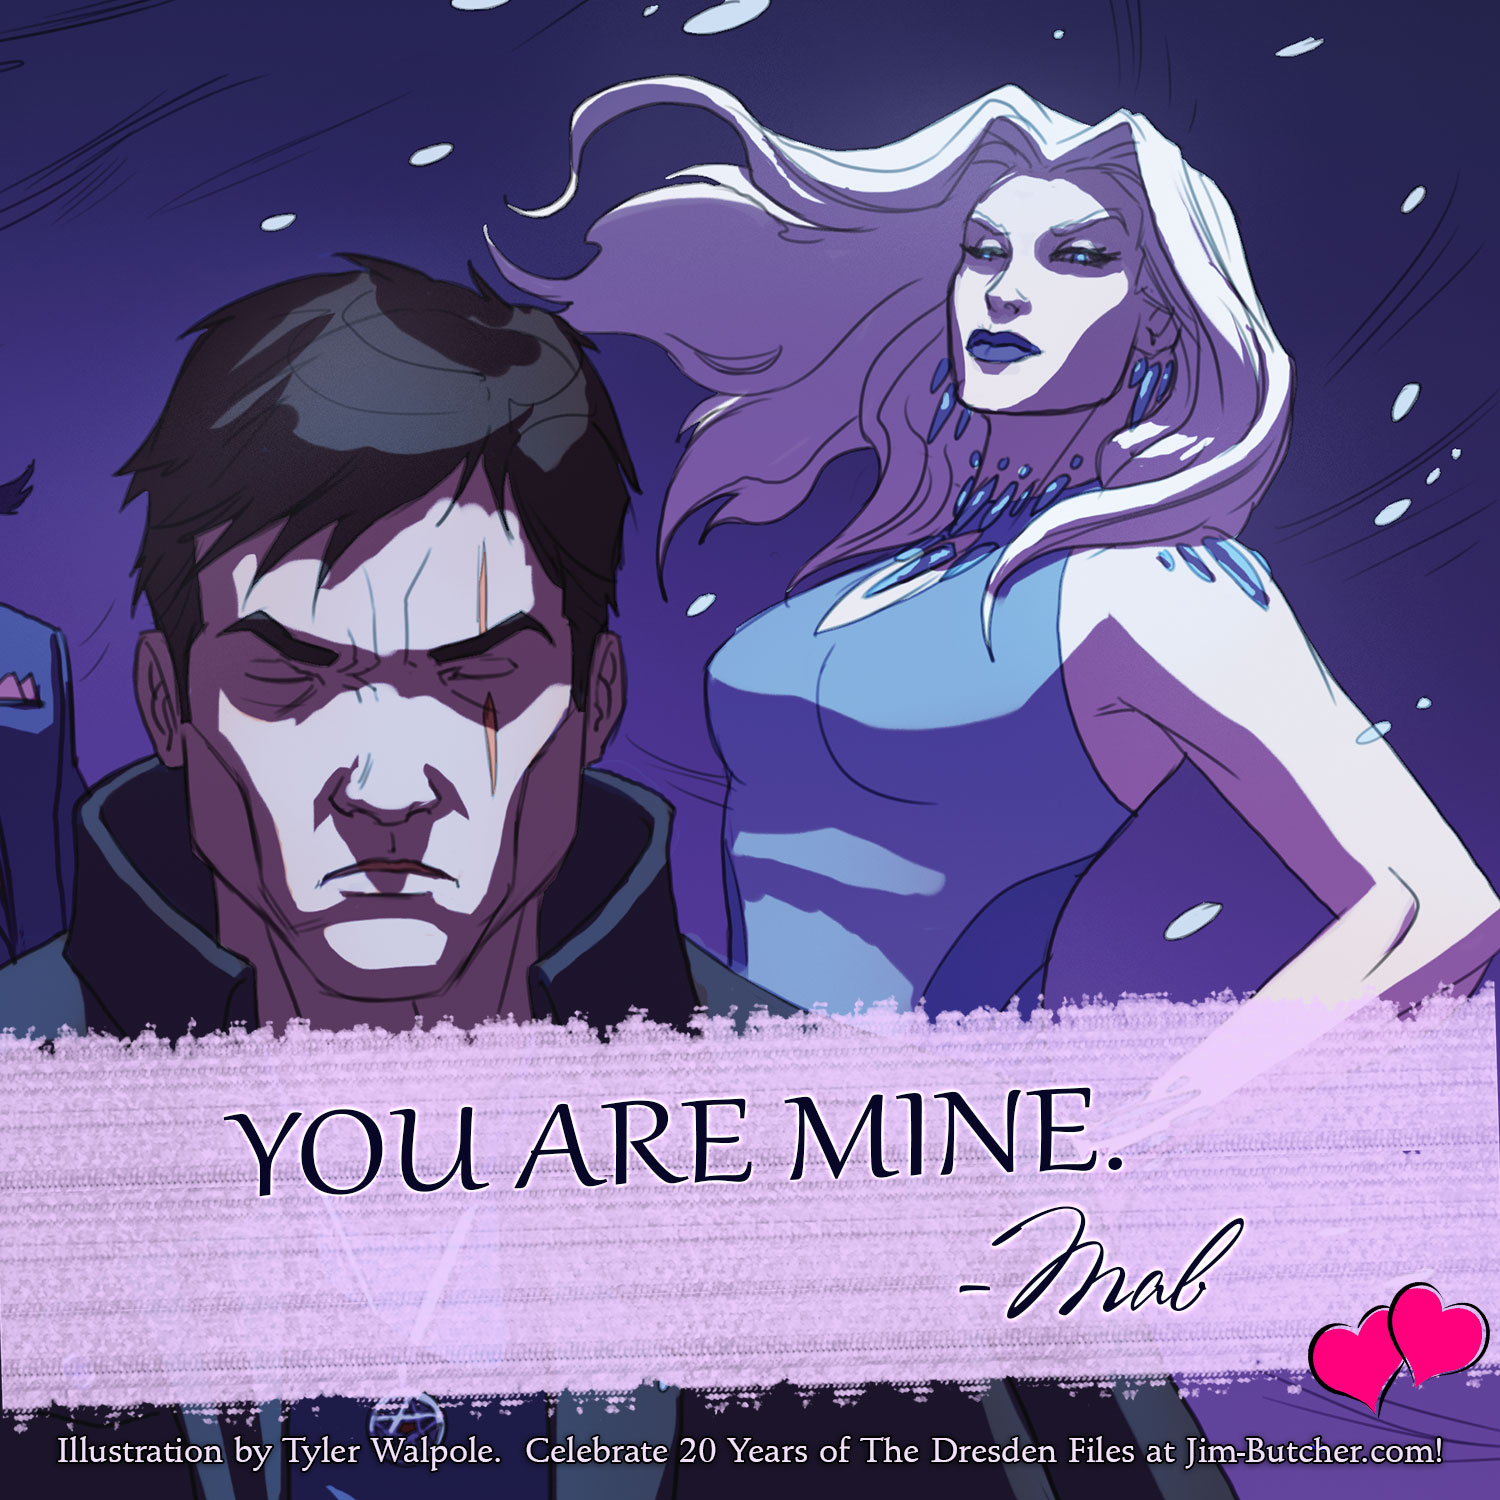 Mab: YOU ARE MINE.